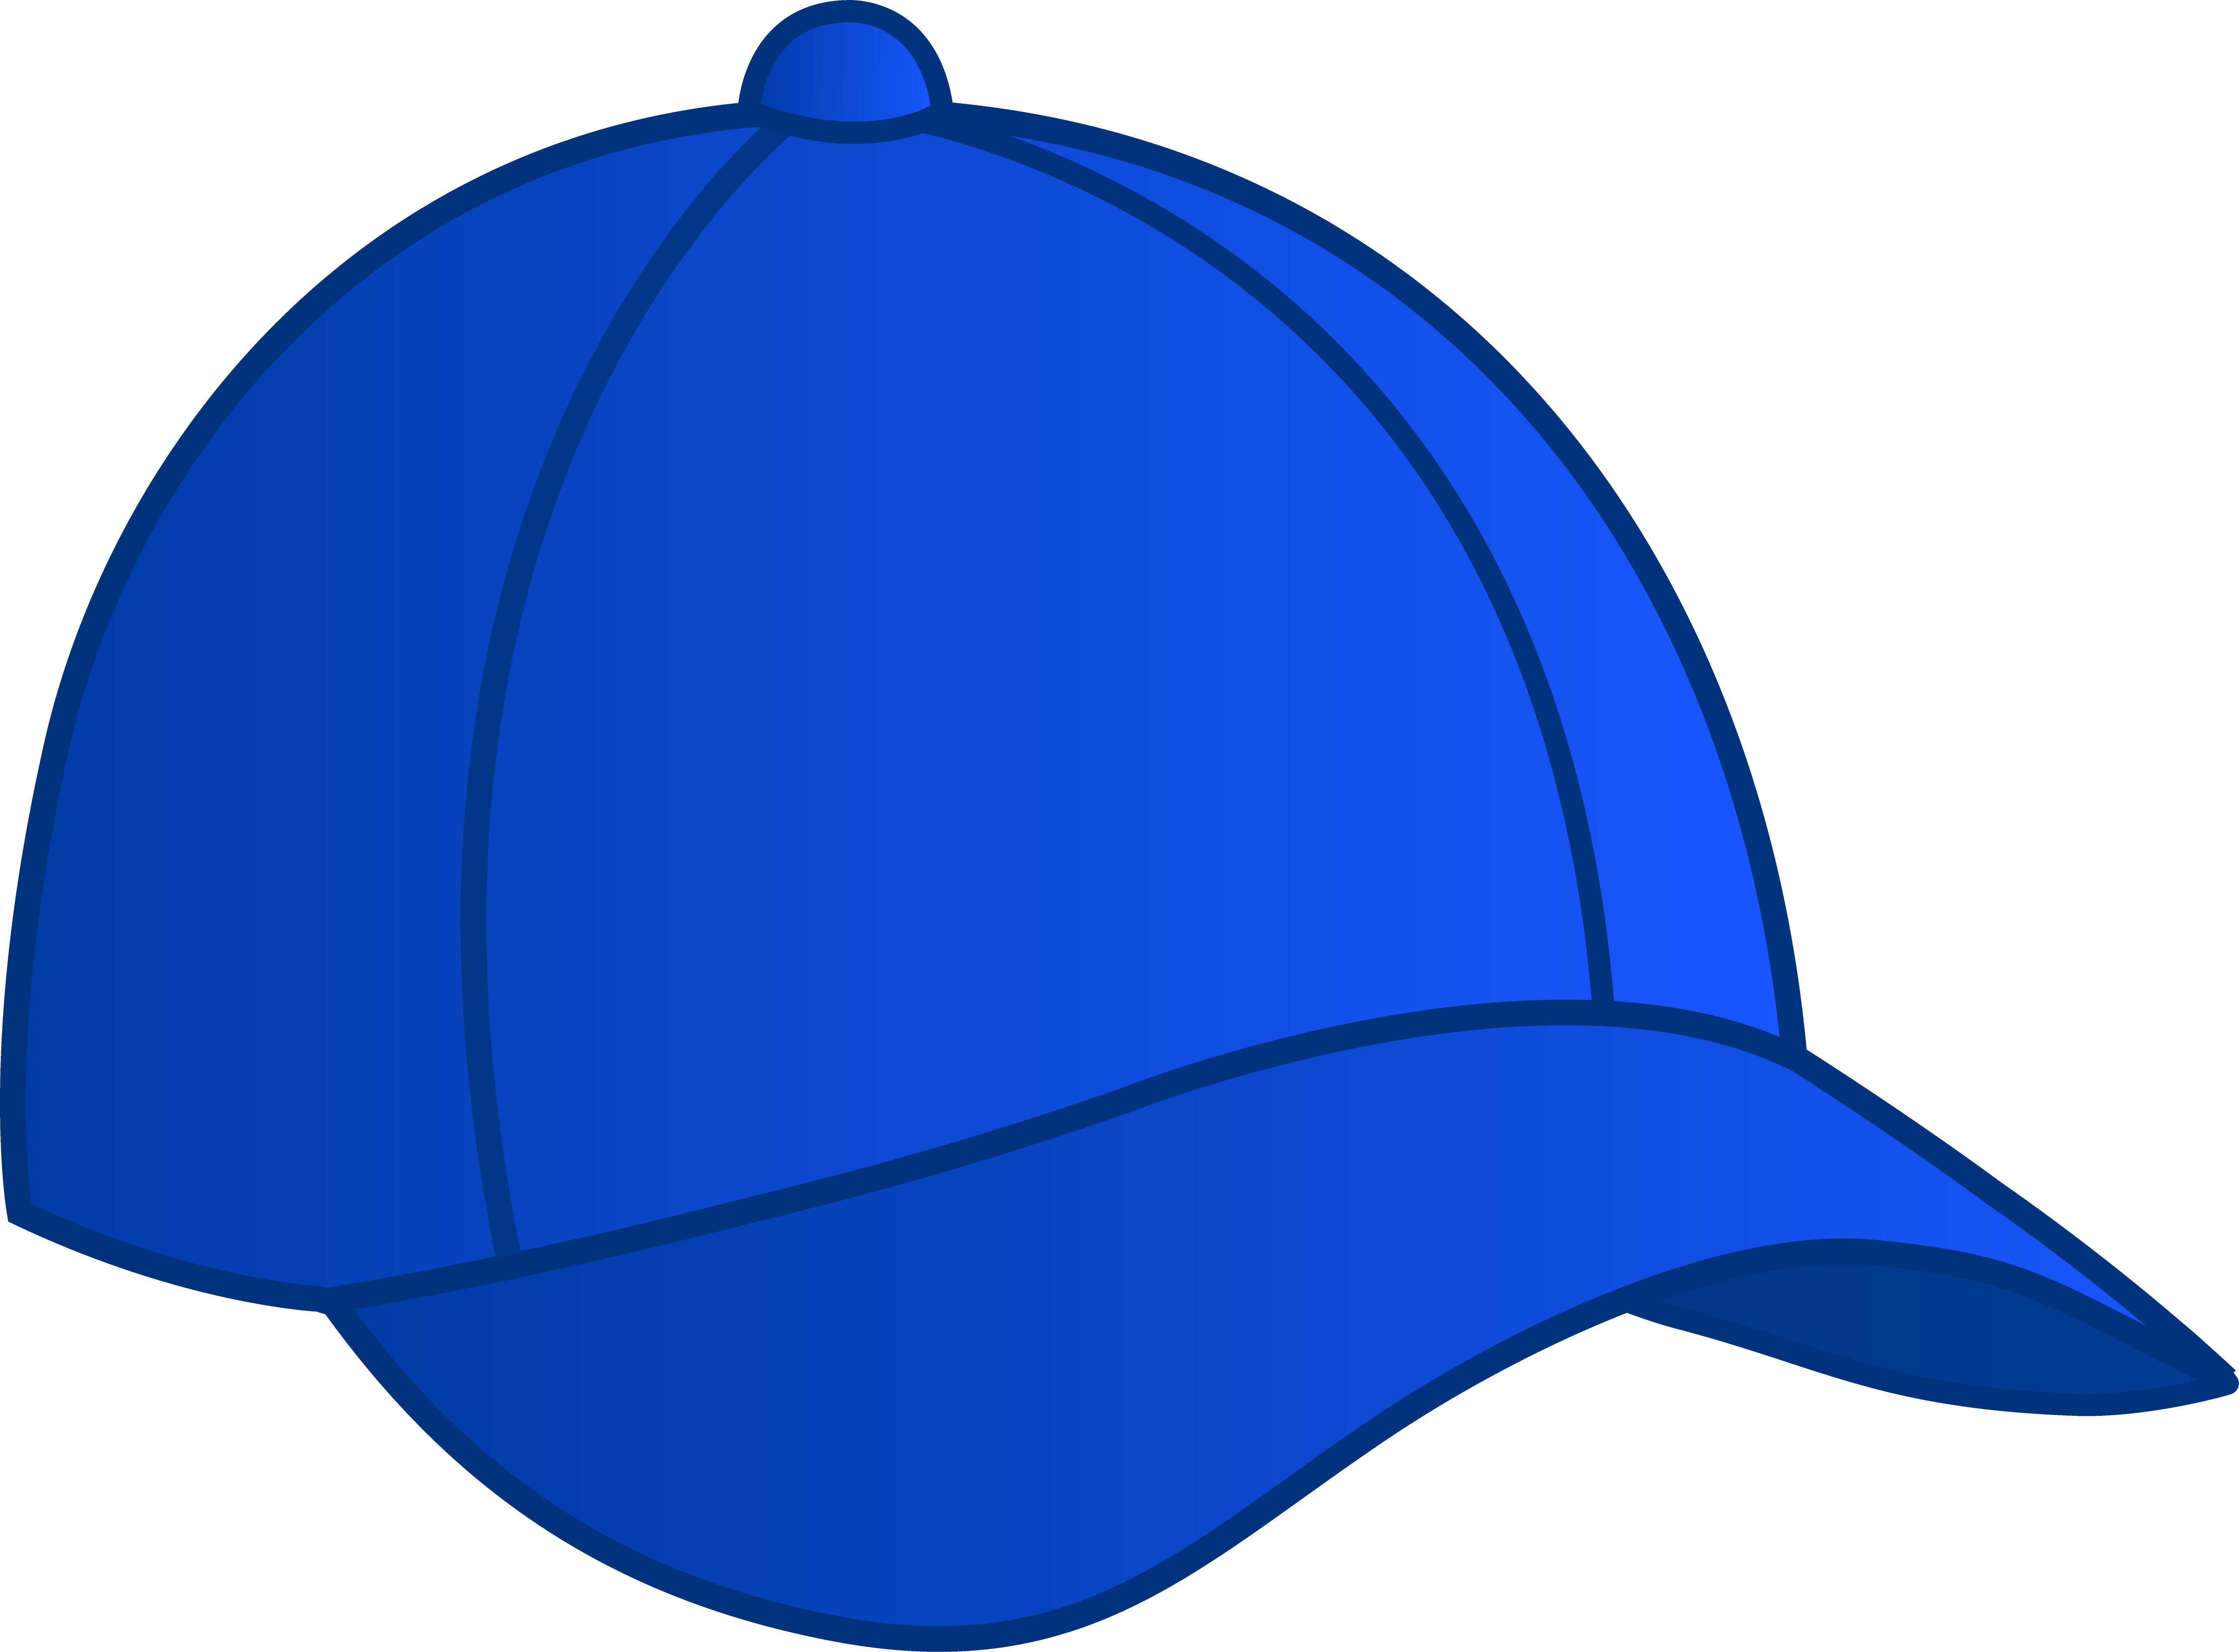 Baseball Cap Icon Baseball Cap And Other 58 100 Icons From Icons8 Icon Pack Follow The Visual Guidelines Of The Operating Syste Icon Android Icons Baseball Cap